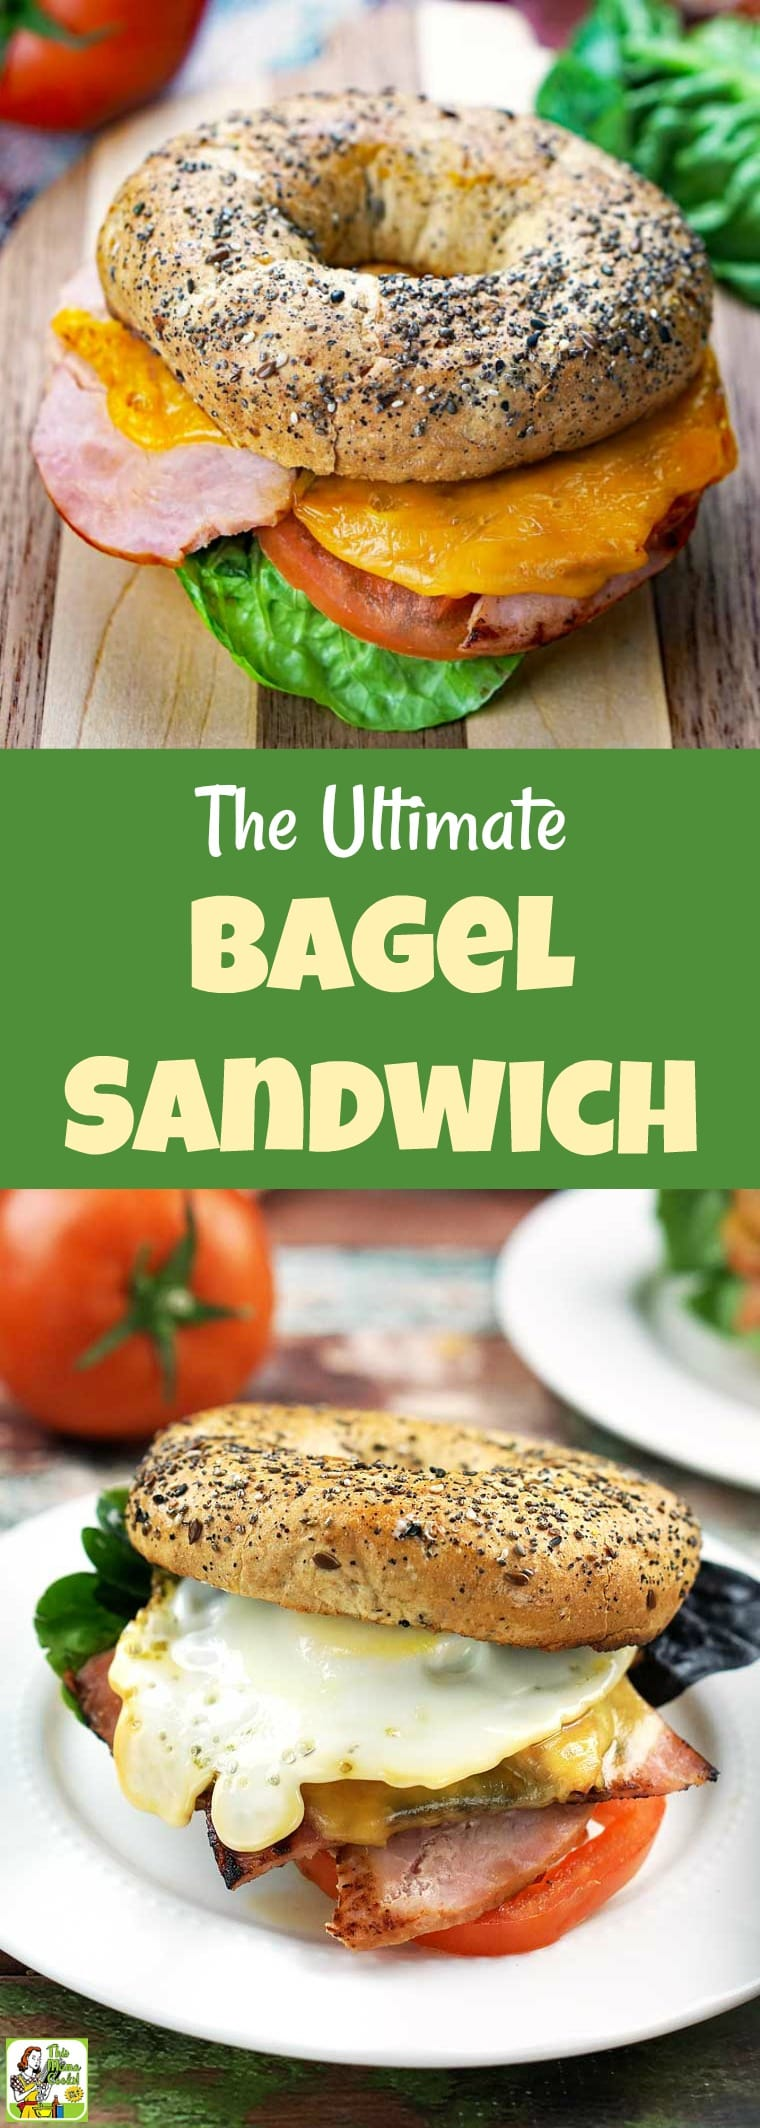 This Ultimate Breakfast Bagel Sandwich comes with tips on how to make a breakfast bagel egg sandwich. #recipes #recipesforone #recipeoftheday #glutenfree #easyrecipes #breakfast #lunch #lunchrecipes #sandwiches #sandwichrecipes #bagels